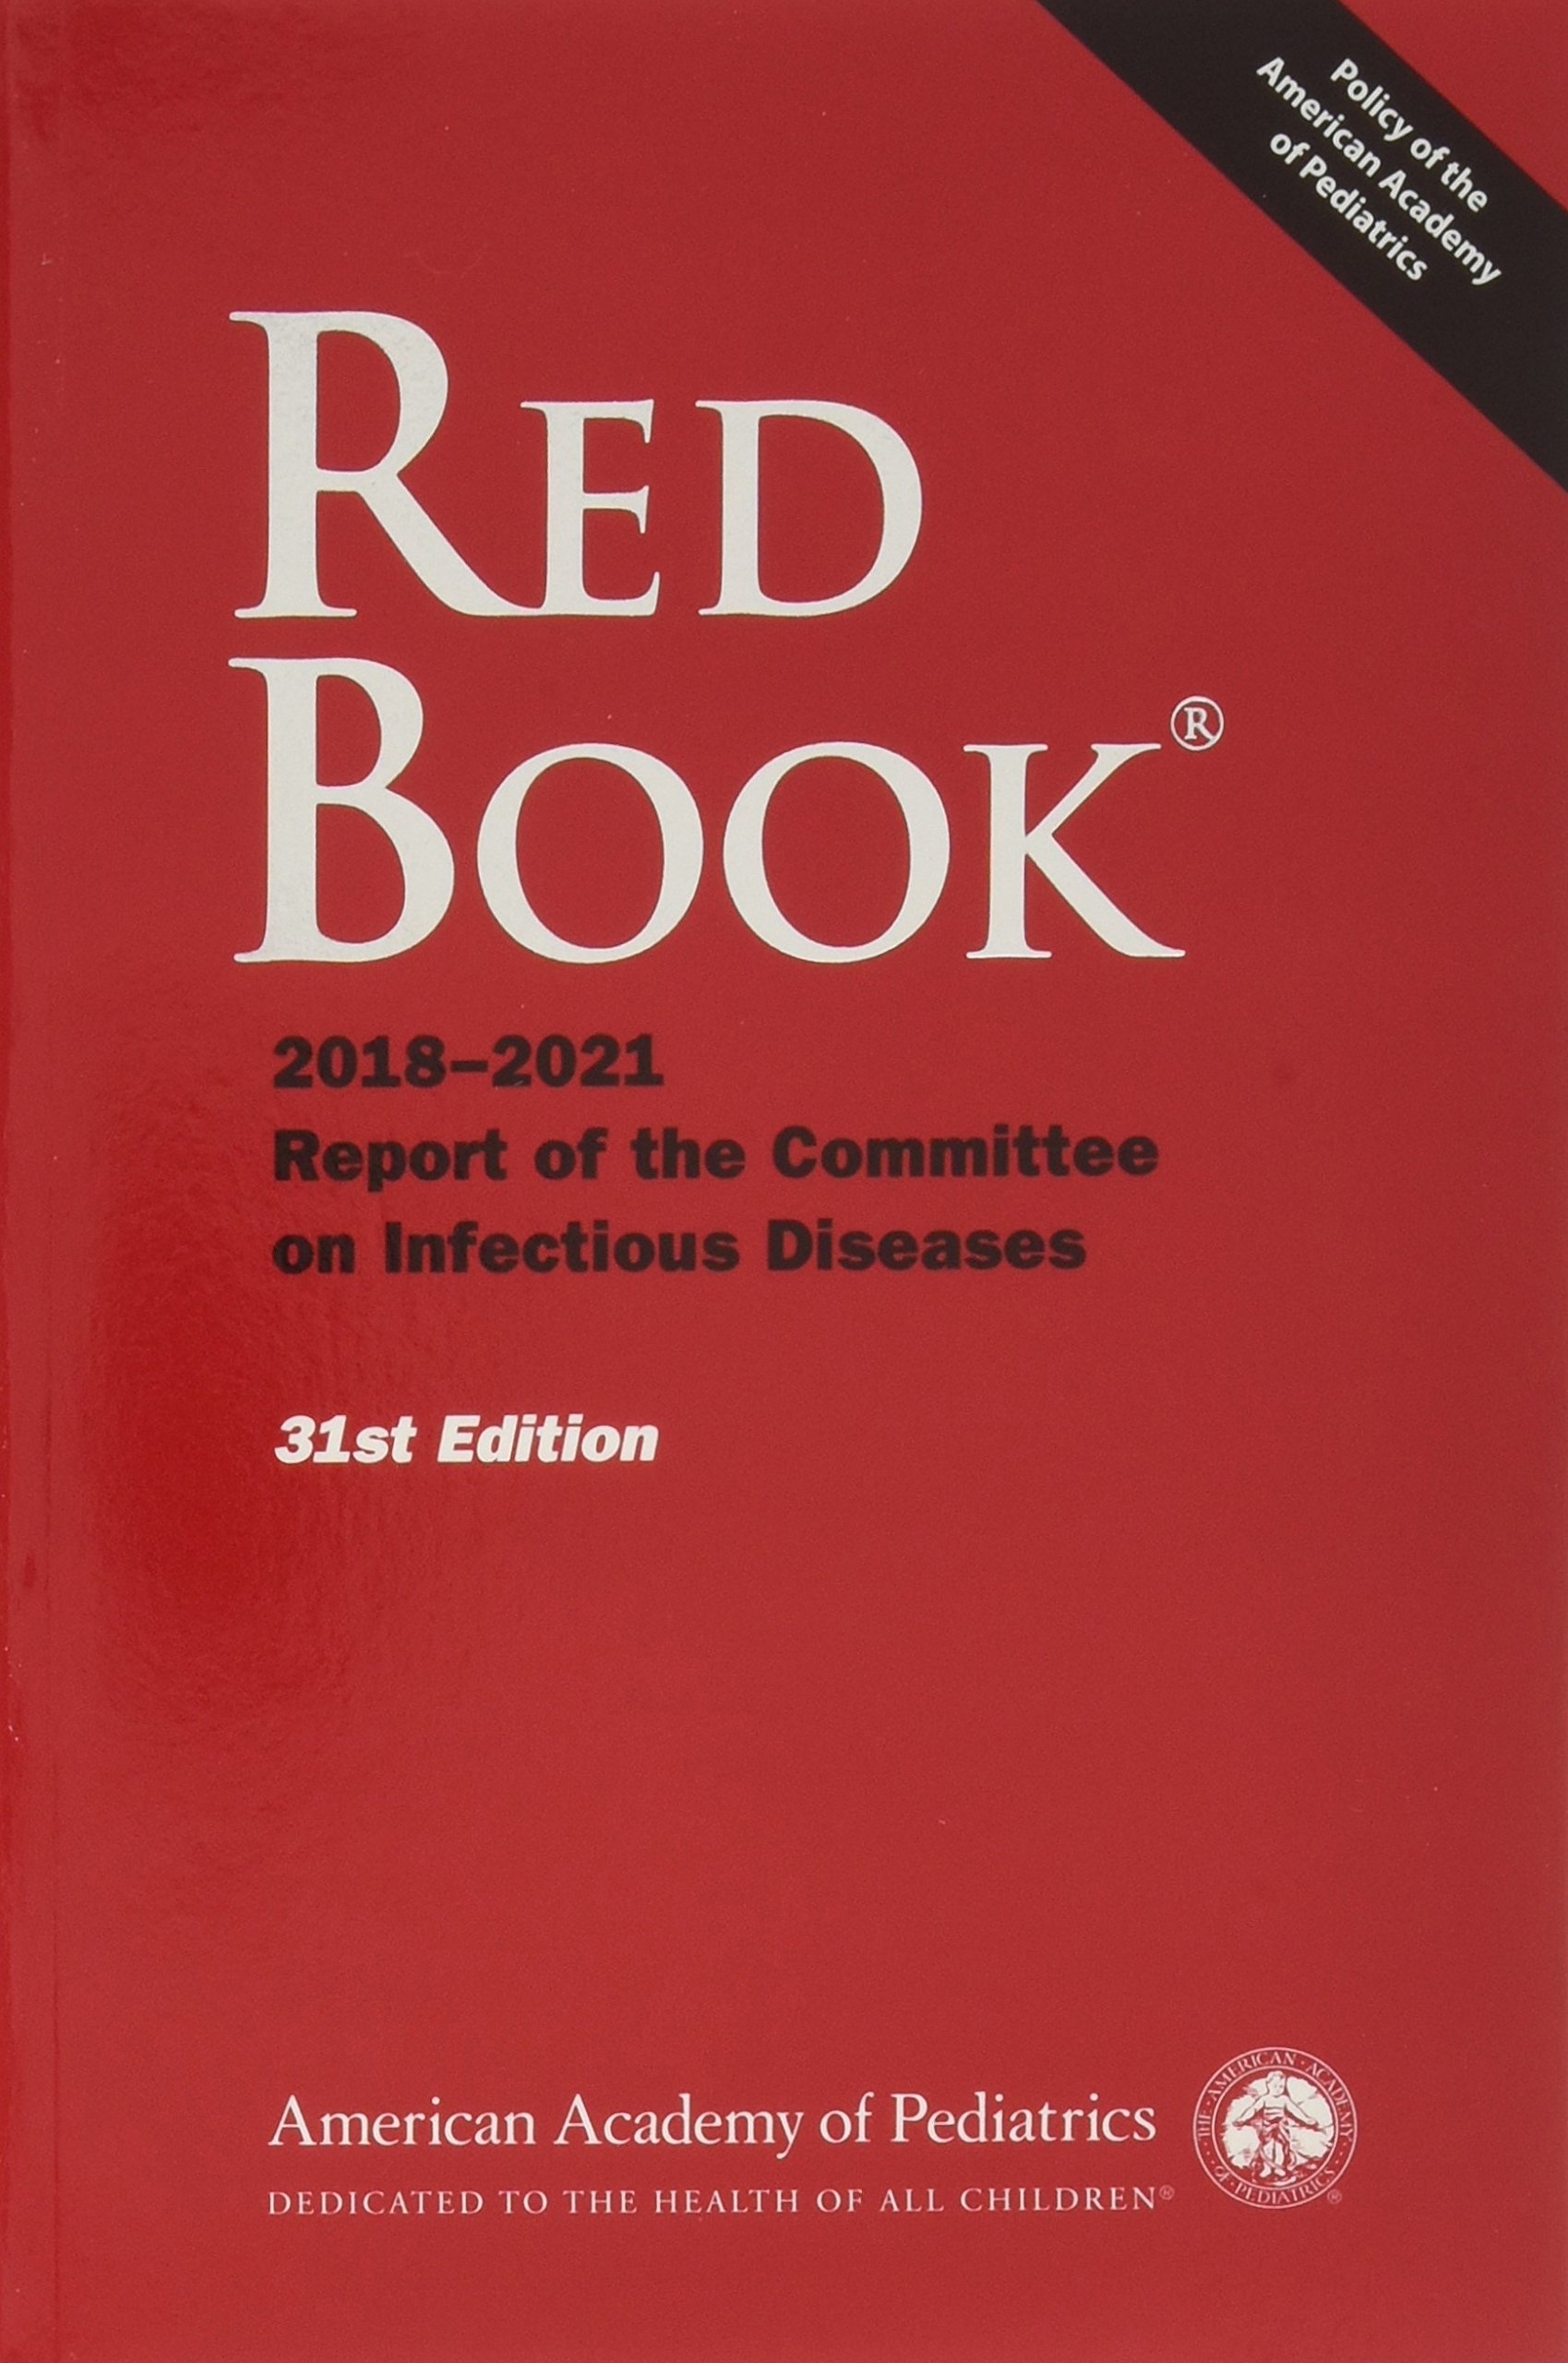 Red Book 2018: Report of the Committee on